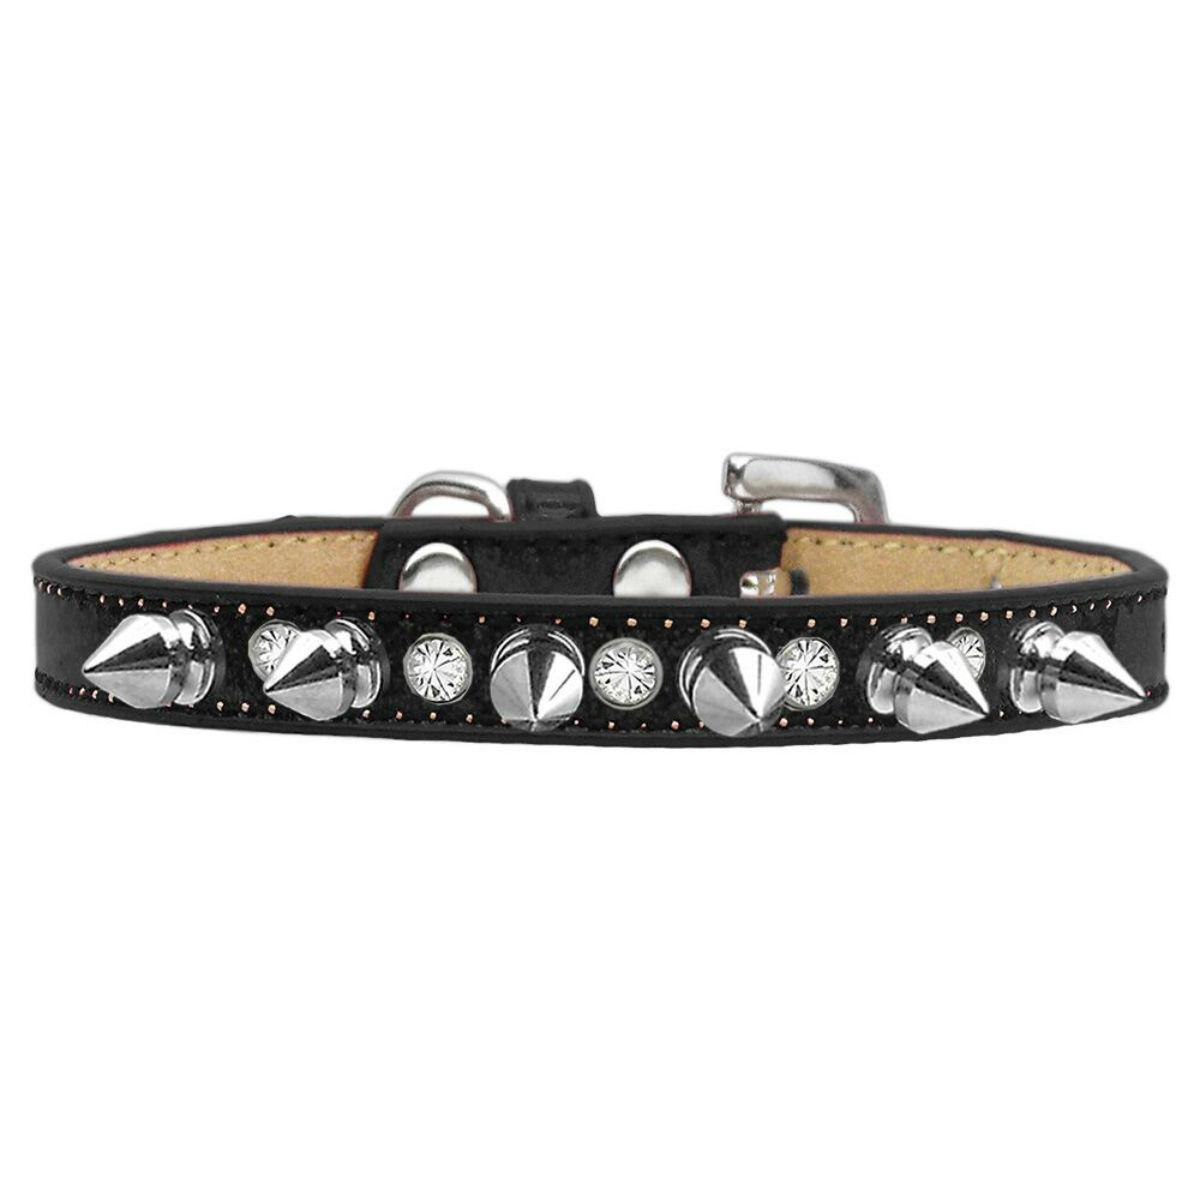 Crystals and Silver Spikes Dog Collar - Black Ice Cream